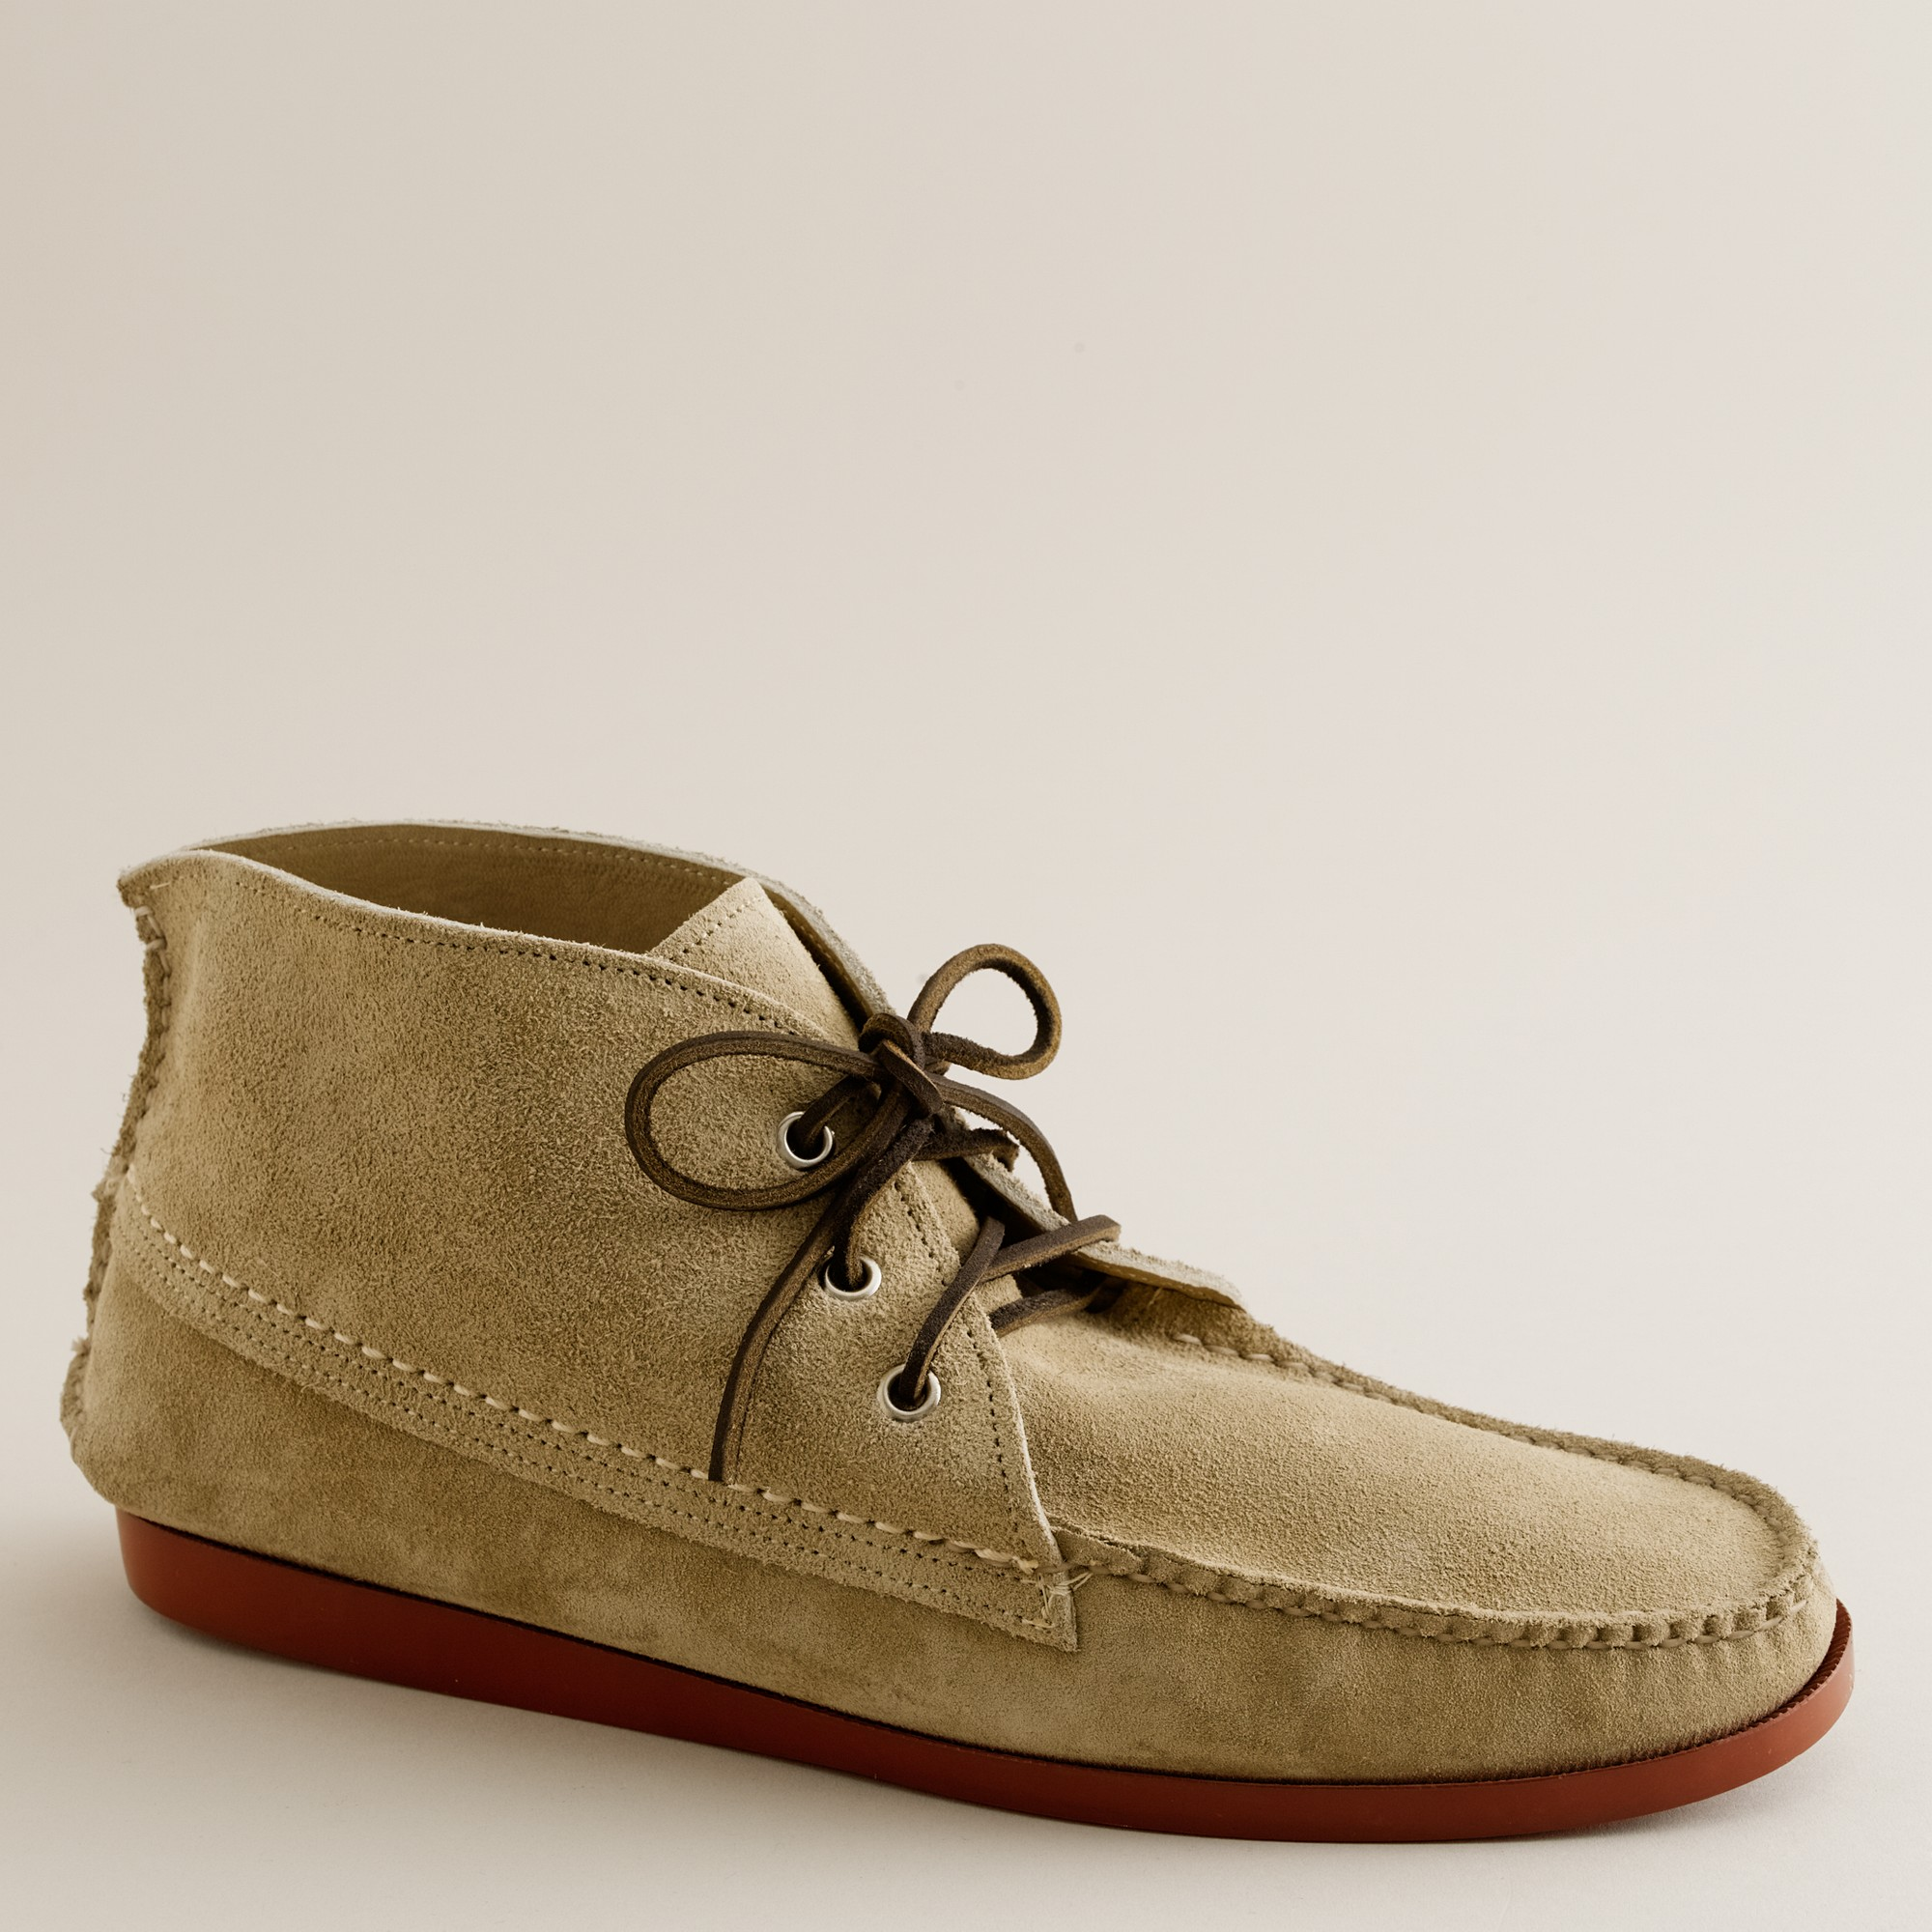 9b743f683b13eb Lyst - J.Crew Mens Quoddy® Suede Chukka Boots in Natural for Men